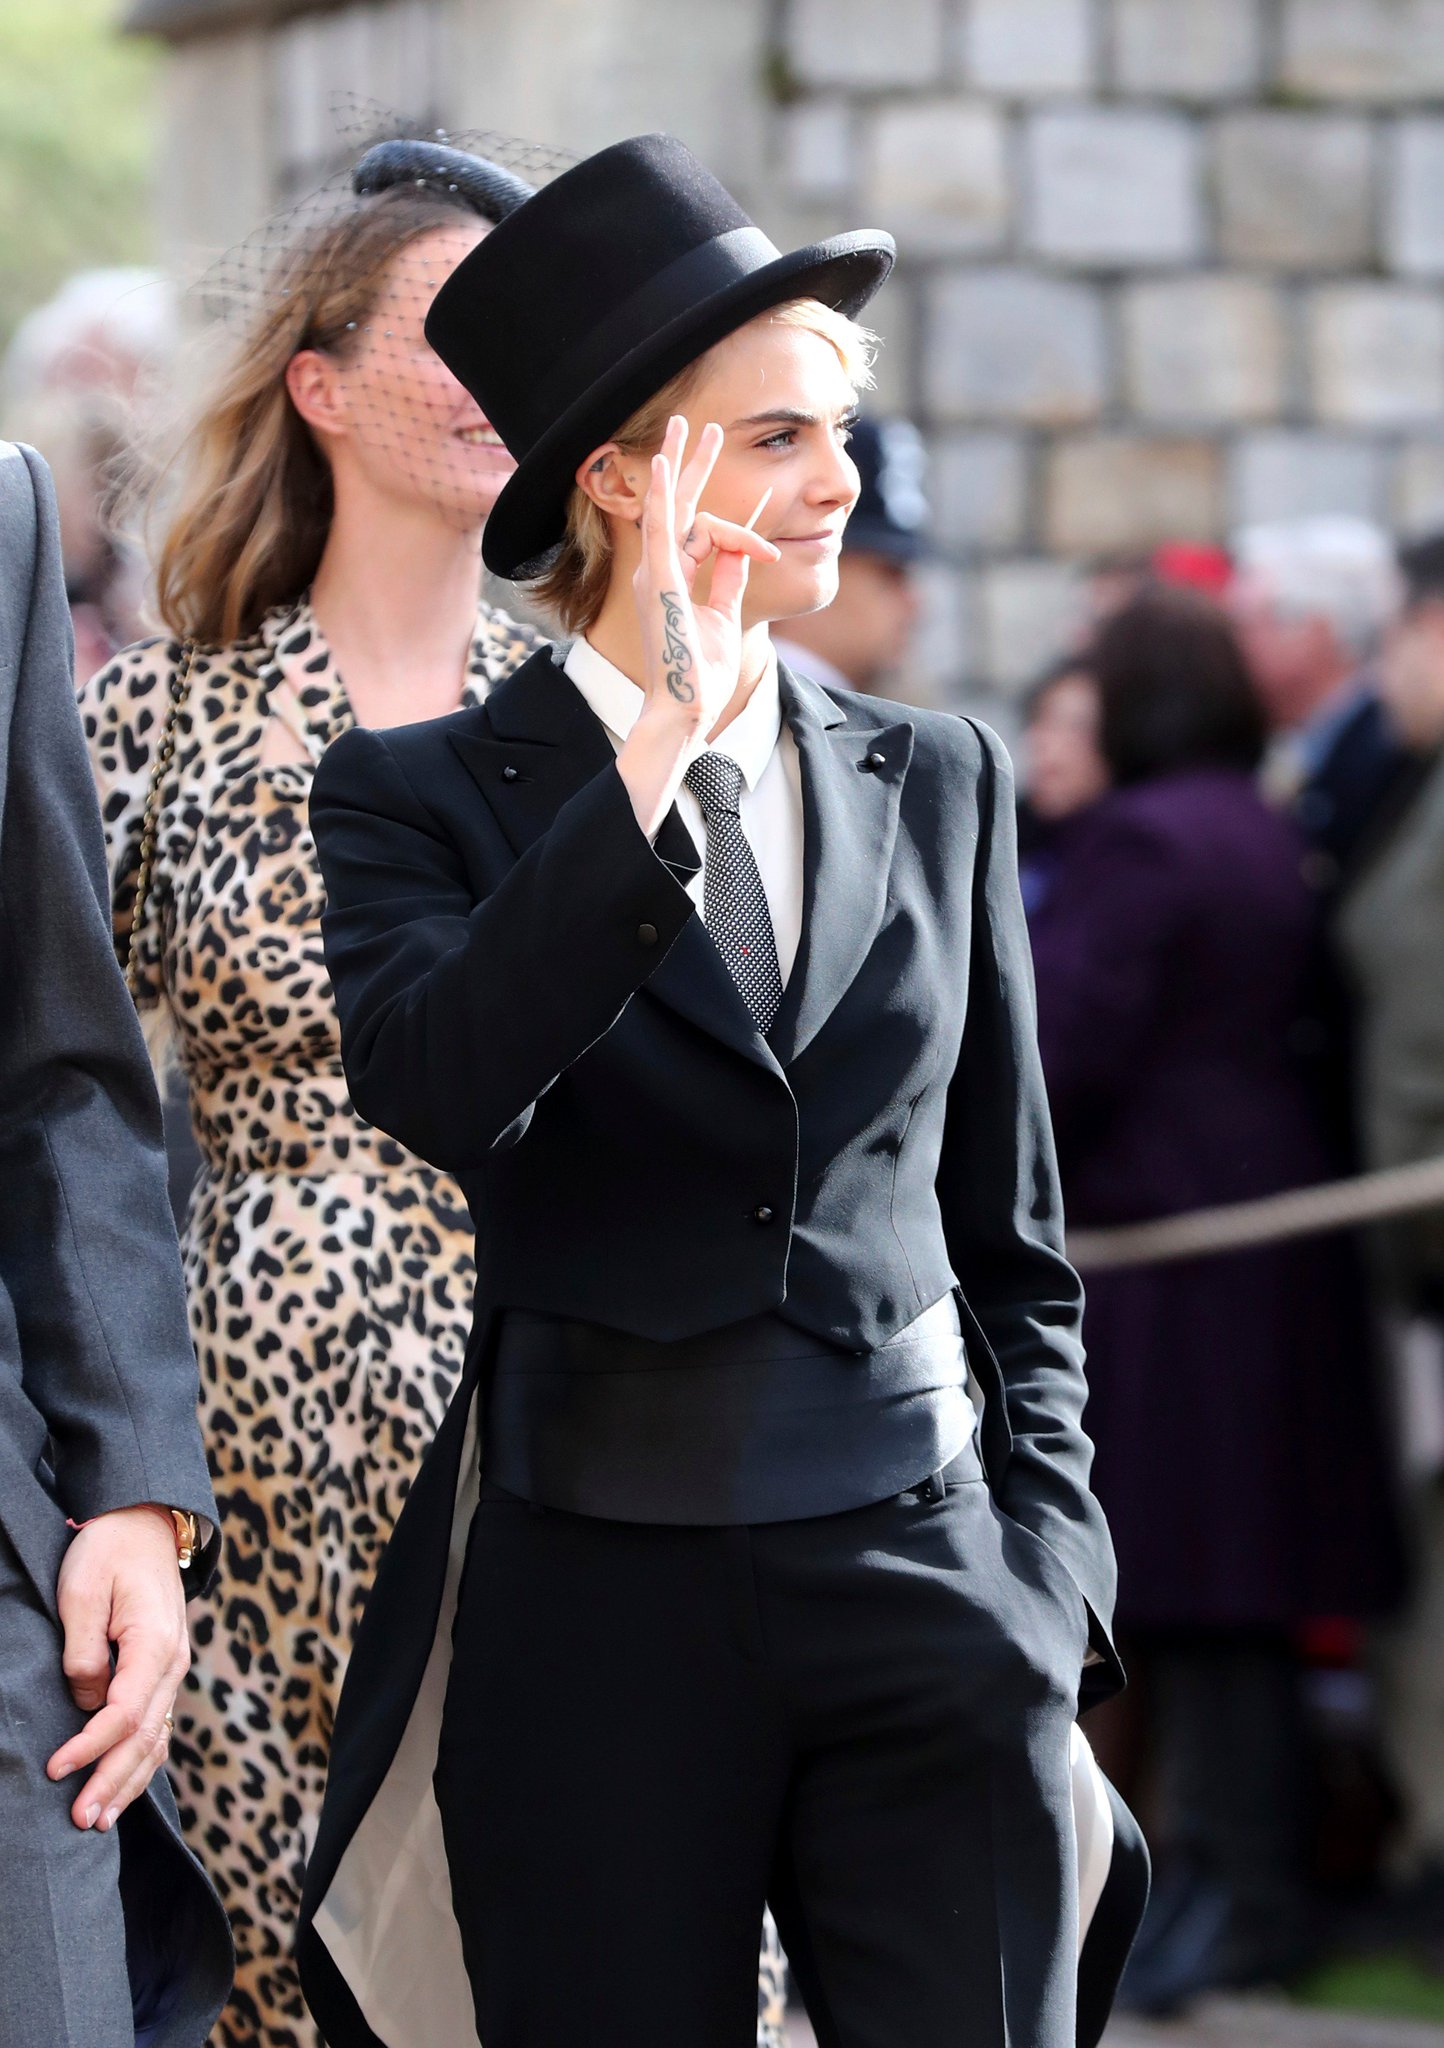 Now THIS is a look fit for a #RoyalWedding. ���������������� @Caradelevingne https://t.co/HVz6eRoLqW